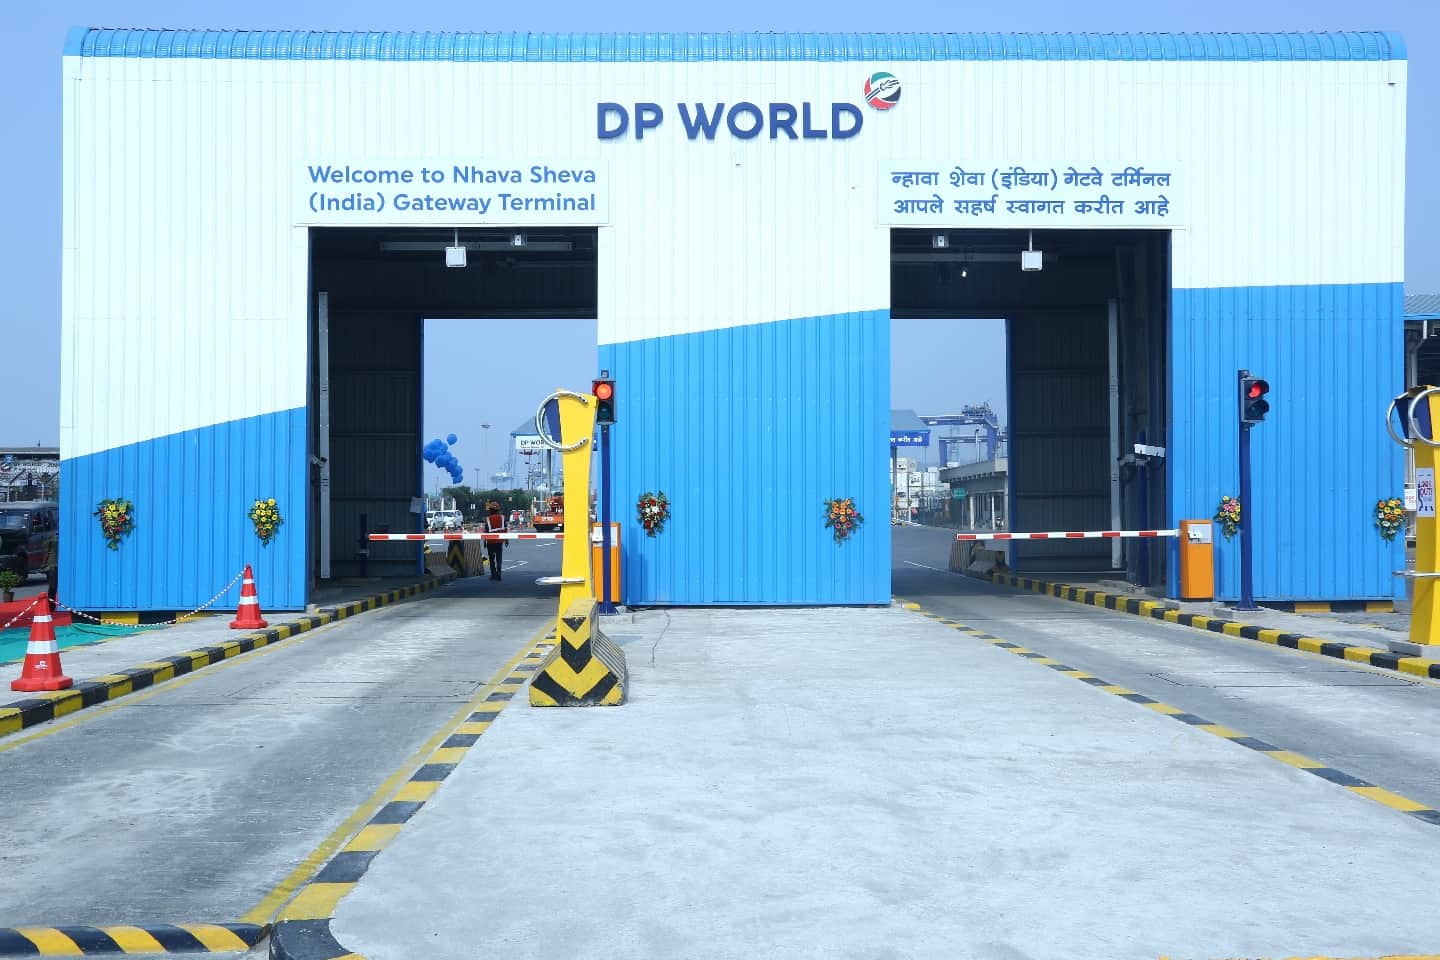 DP World to operate India's first automated port gates